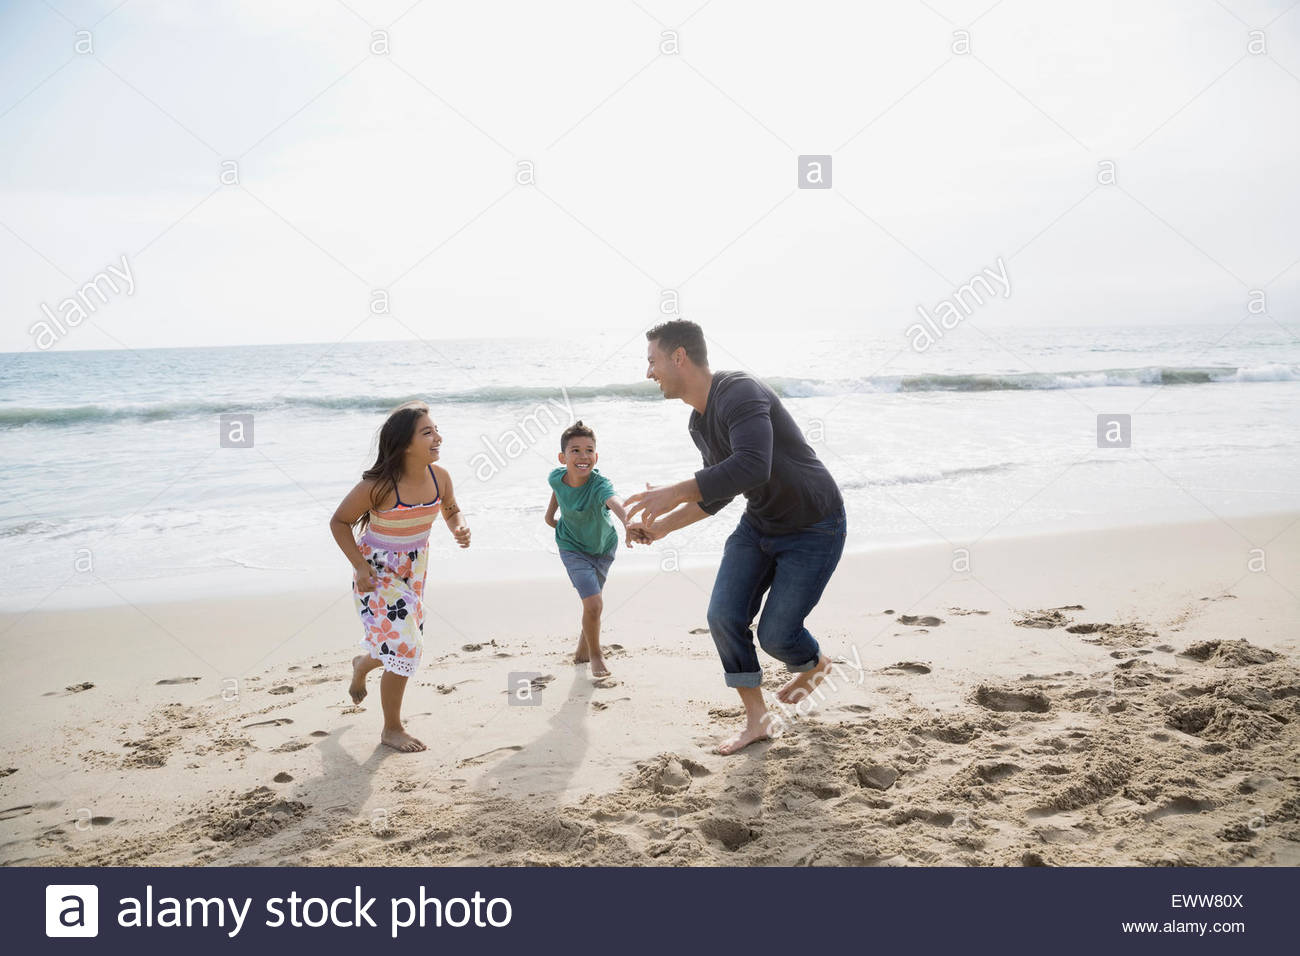 Playful family running on sunny beach - Stock Image